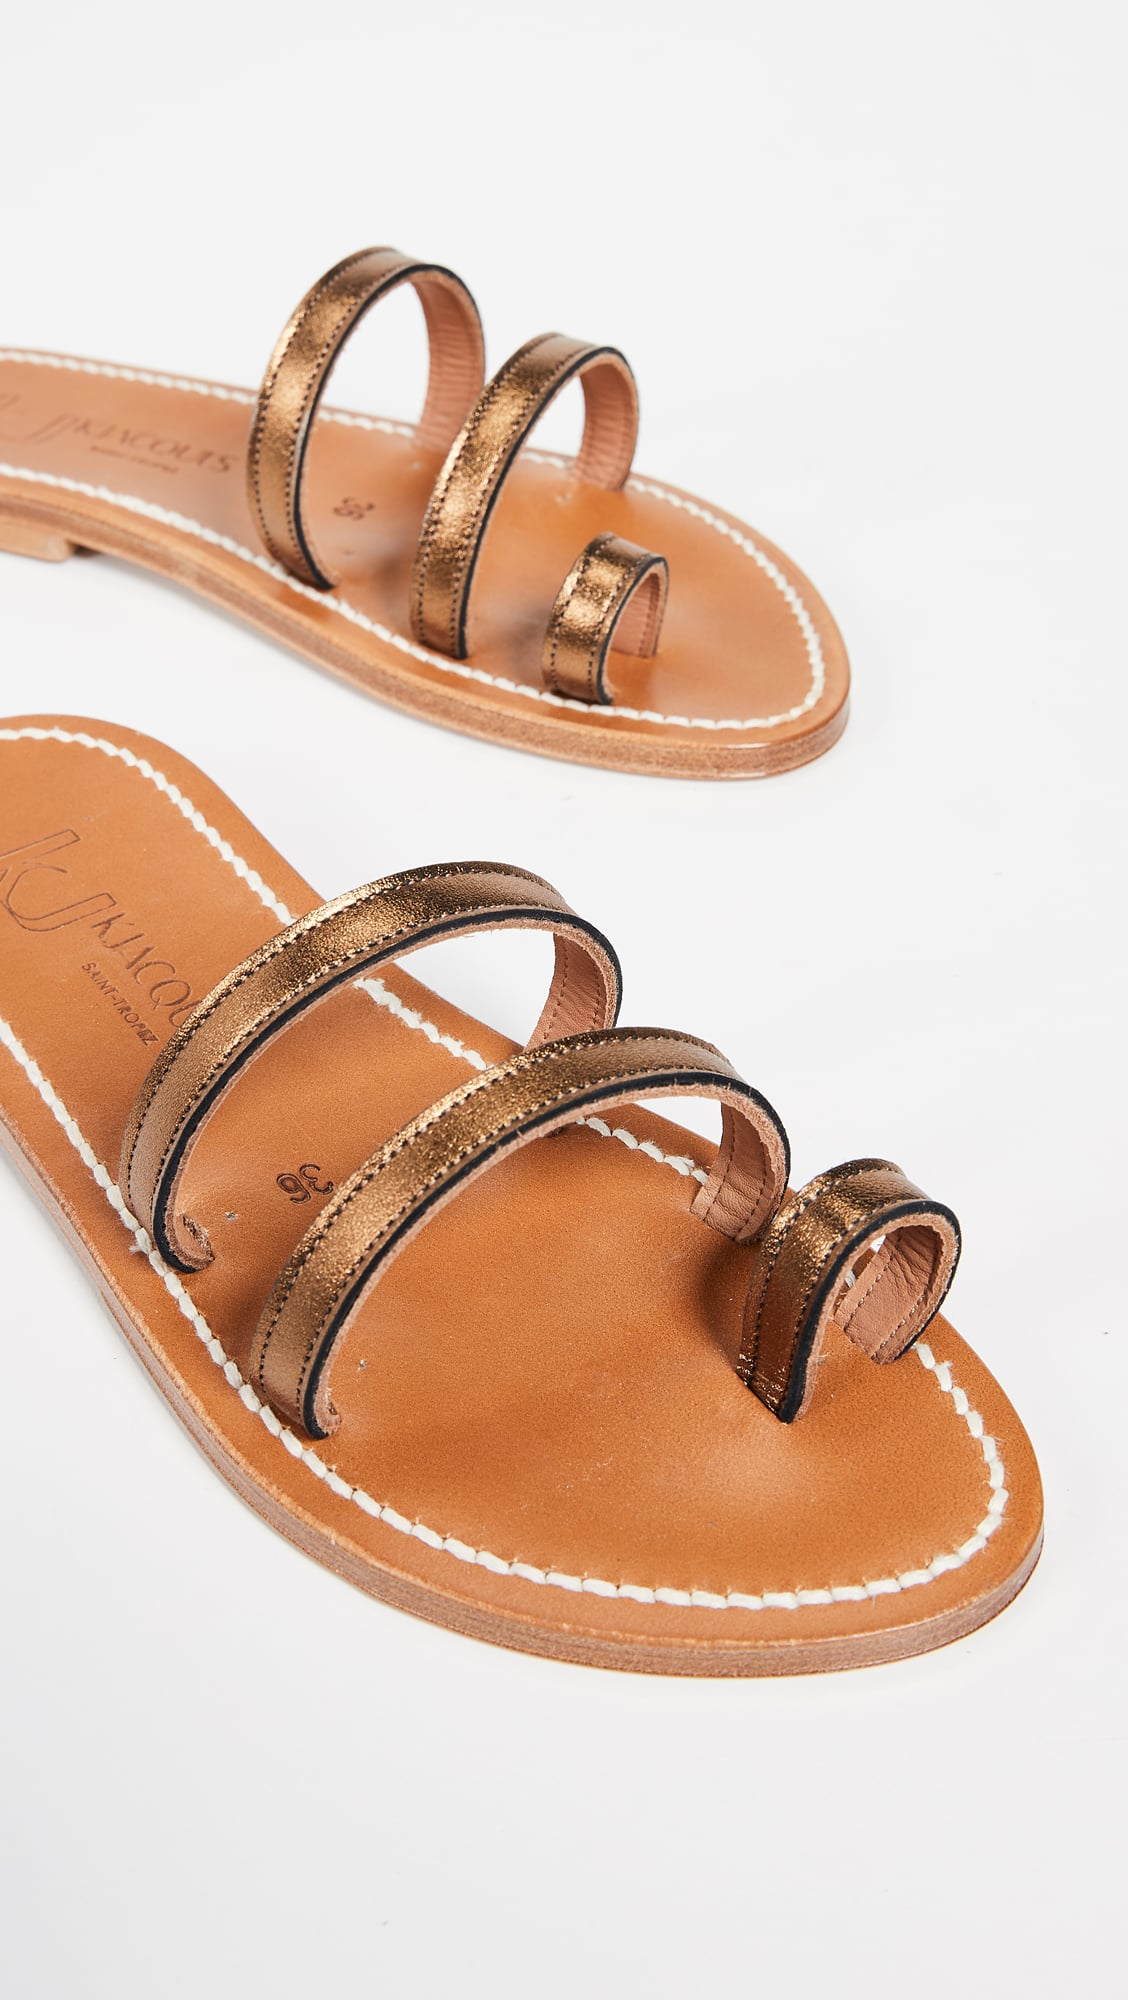 new arrivals 62e11 e8c04 K. Jacques Chiron Toe Ring Slides | If You Haven't Seen ...